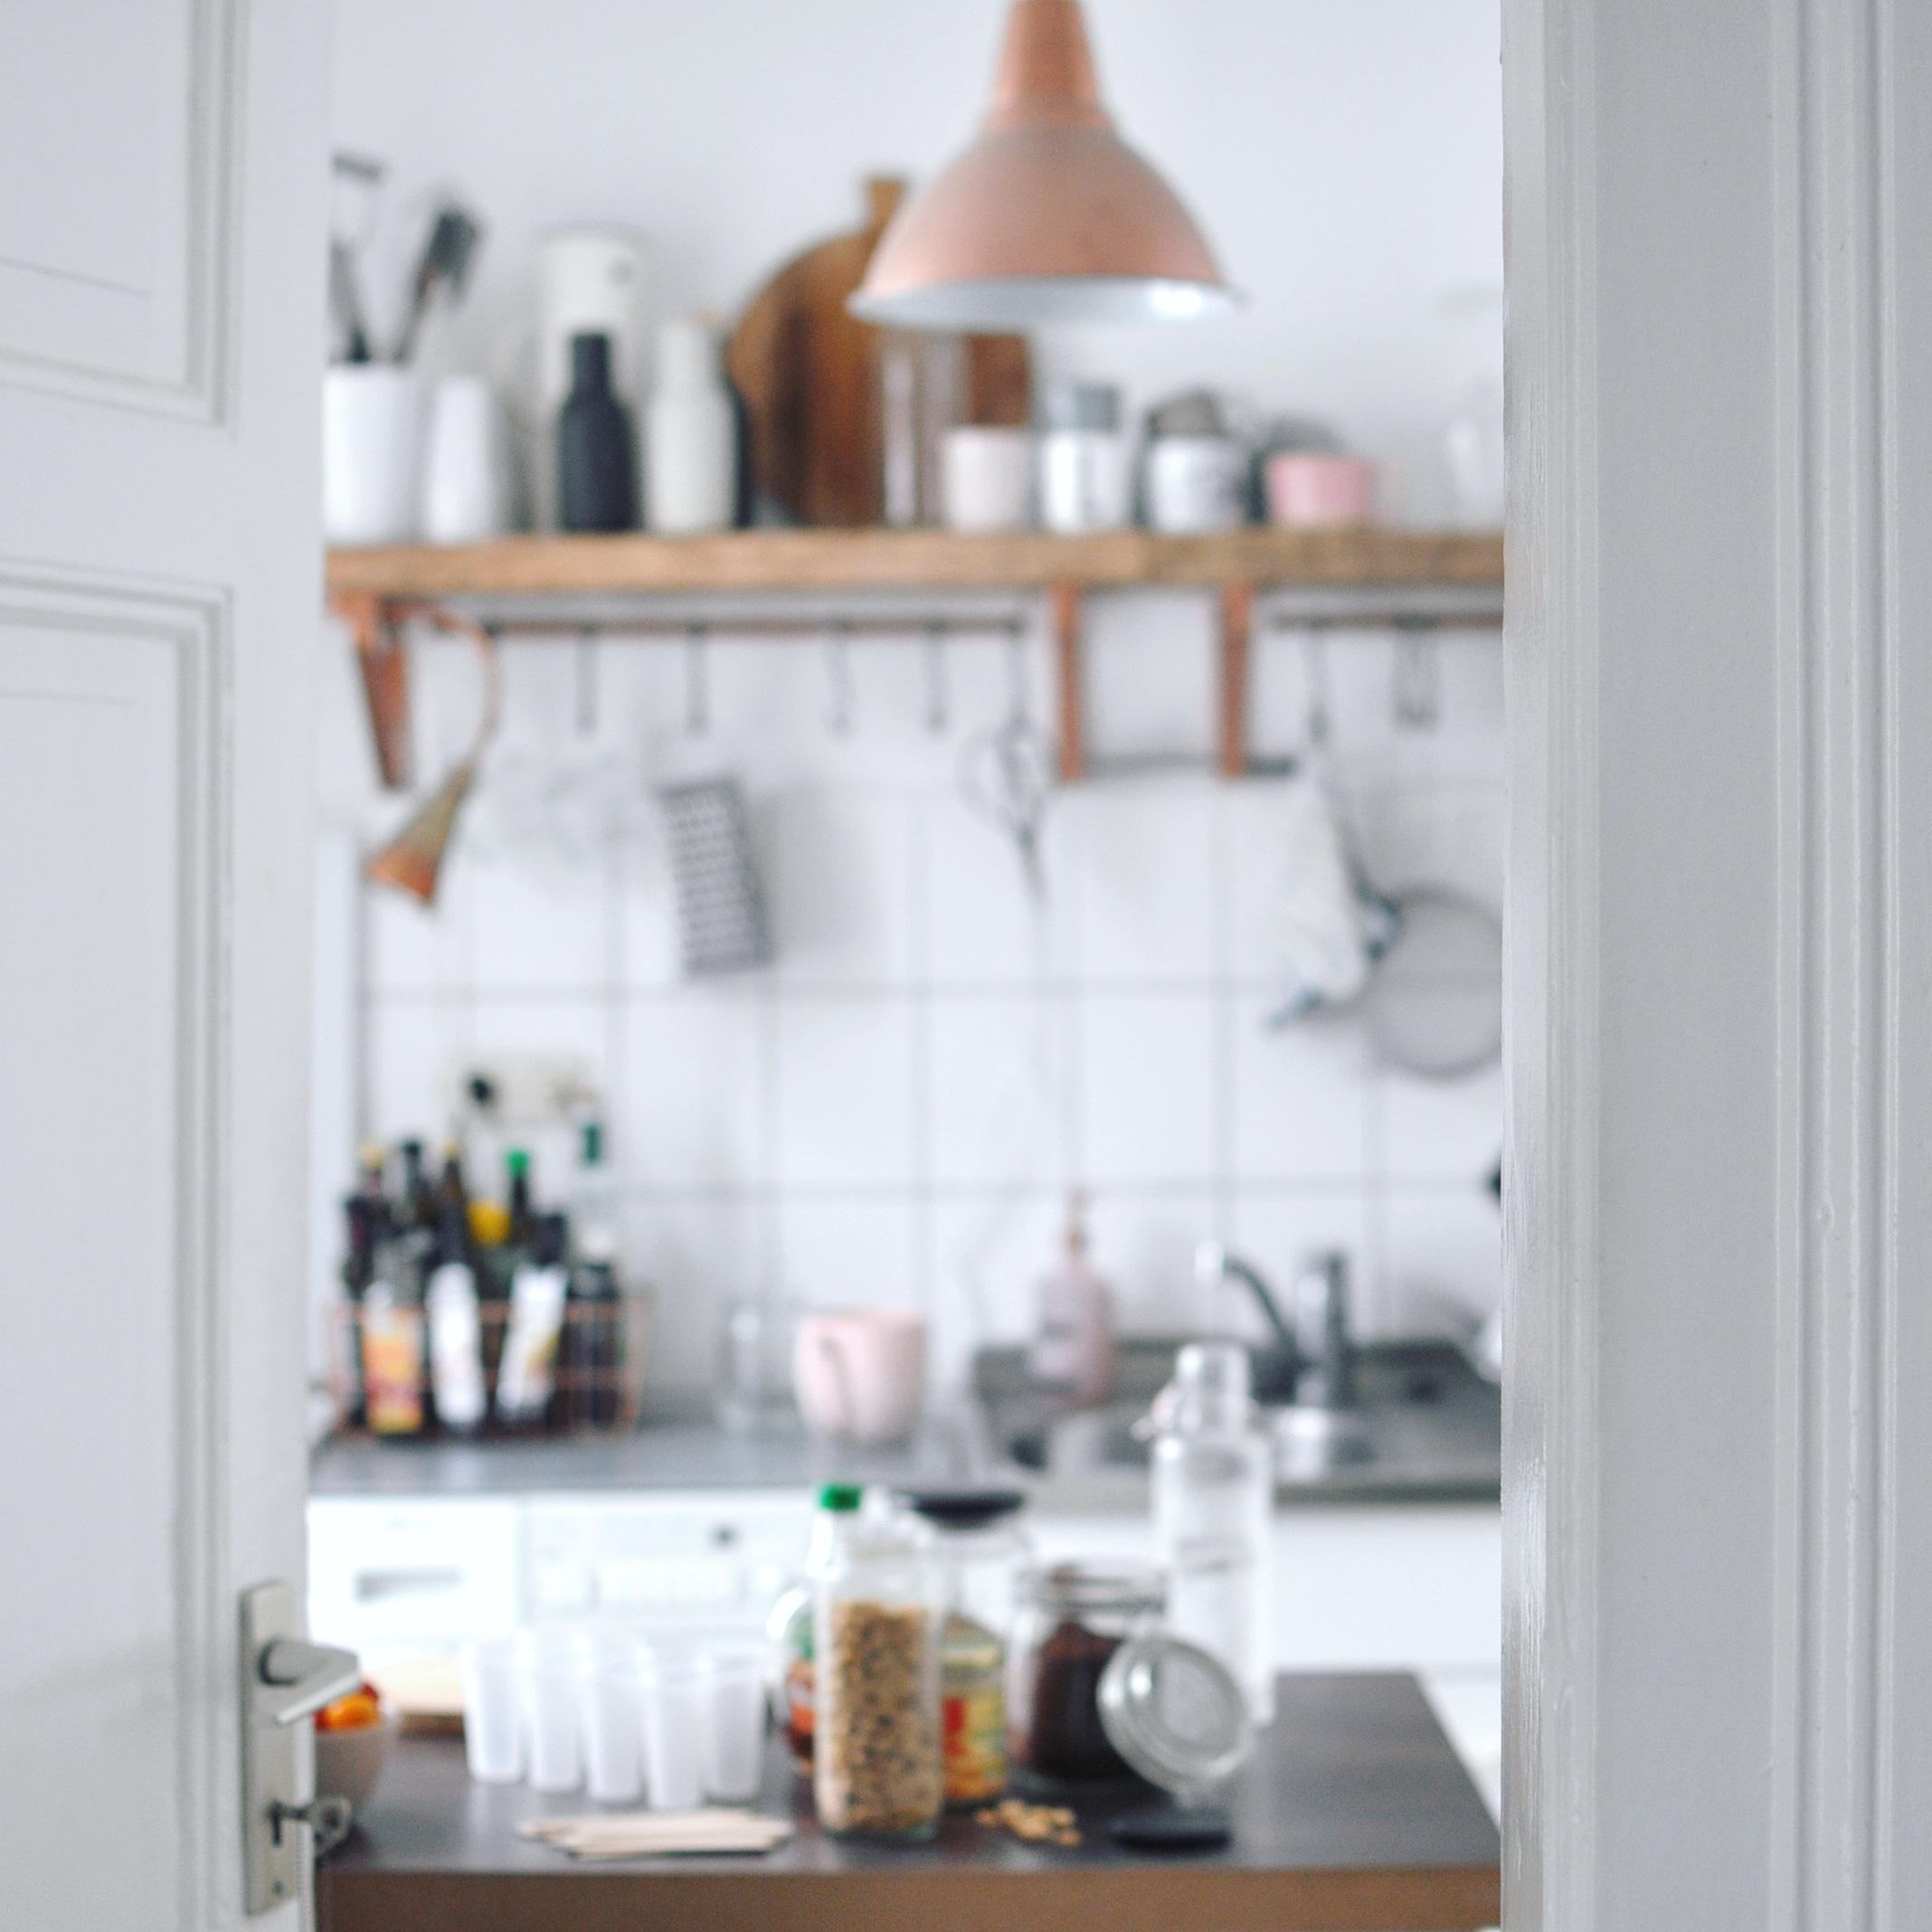 Einblick die Eisproduktion in Lenkas Kitchn #küche #kitchen #icecream